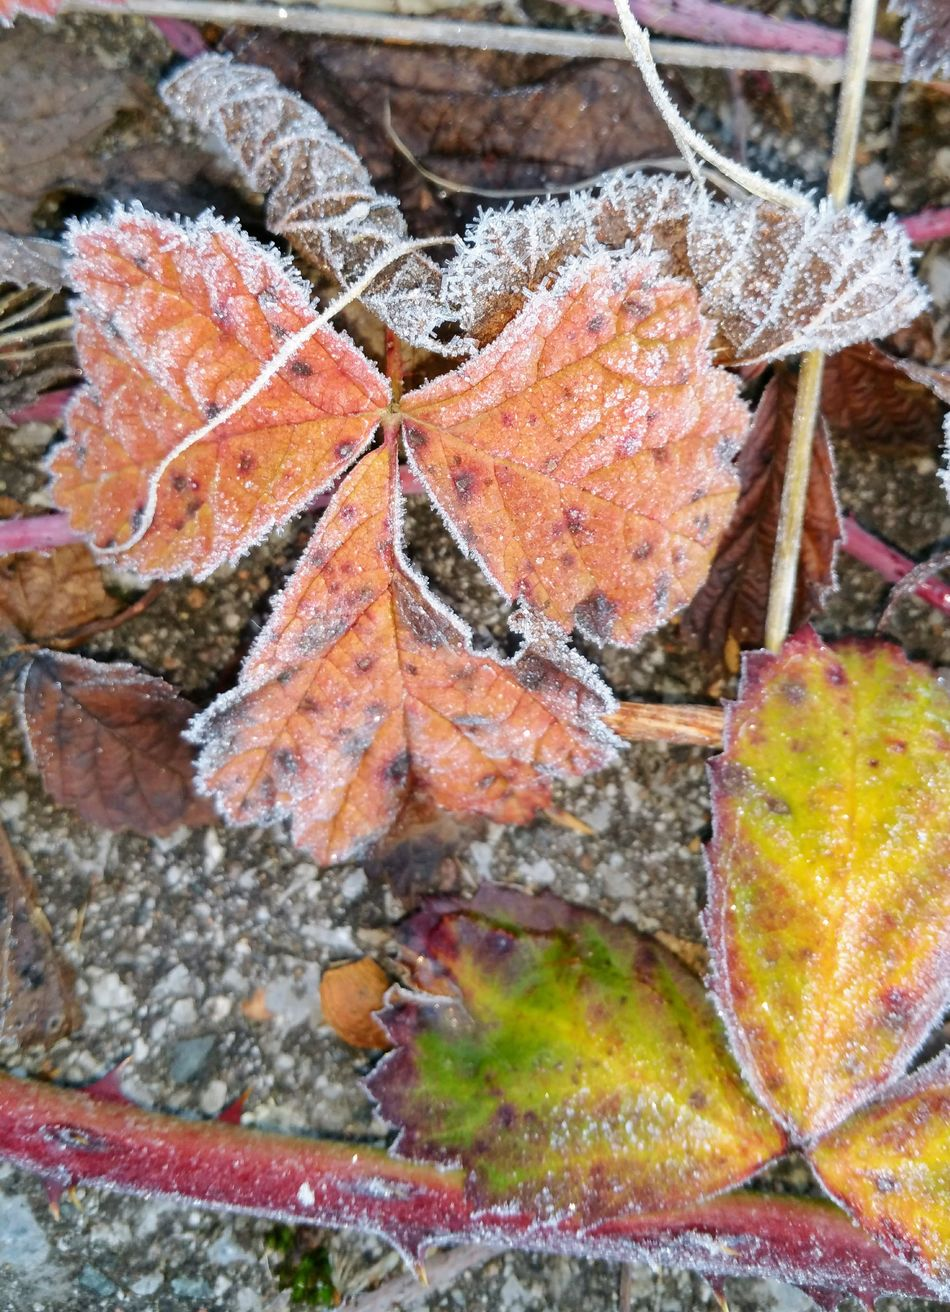 Leaf Nature Autumn Change Close-up Outdoors Day No People Fragility Beauty In Nature EyeEm Nature Lover I Like This Shot VariousColors Focus On Foreground I LIKE👍EyeEm😃👍 I Like It My Point Of View Winter Beauty In Nature Cold Temperature